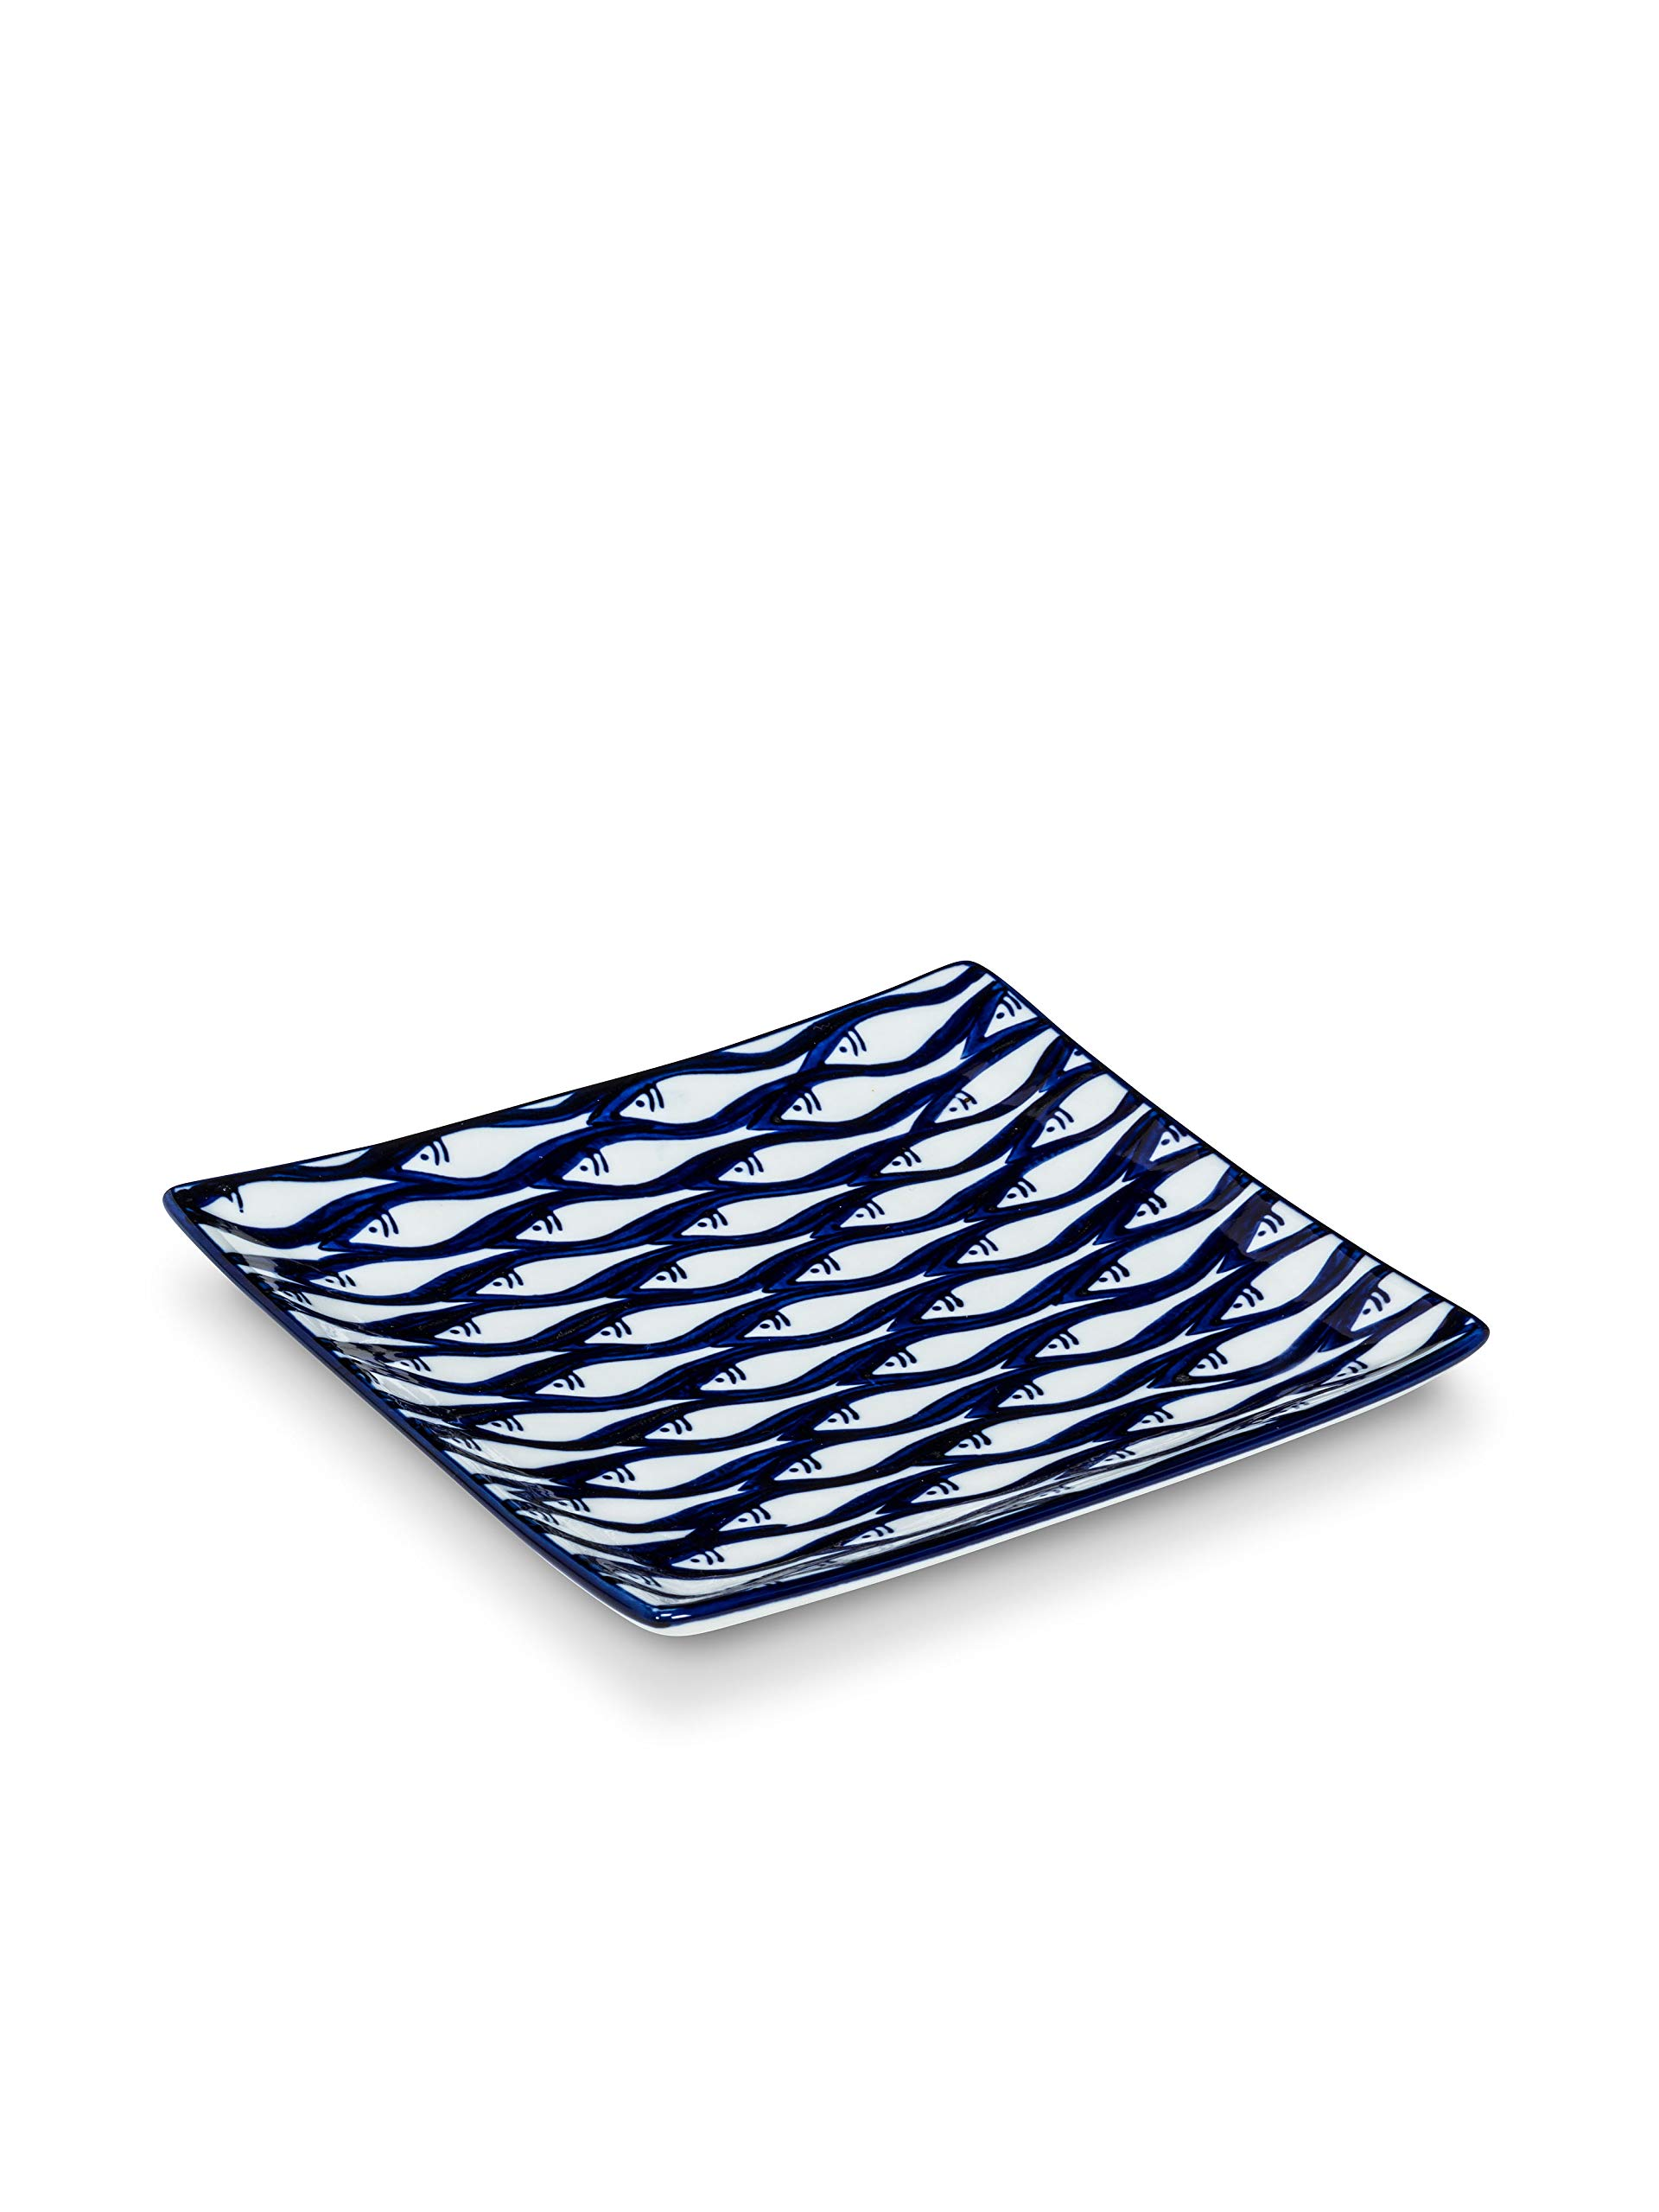 Abbott Collection 27-Cayman Fish School Plate-6'' Sq, 6 inches Square, Blue and White